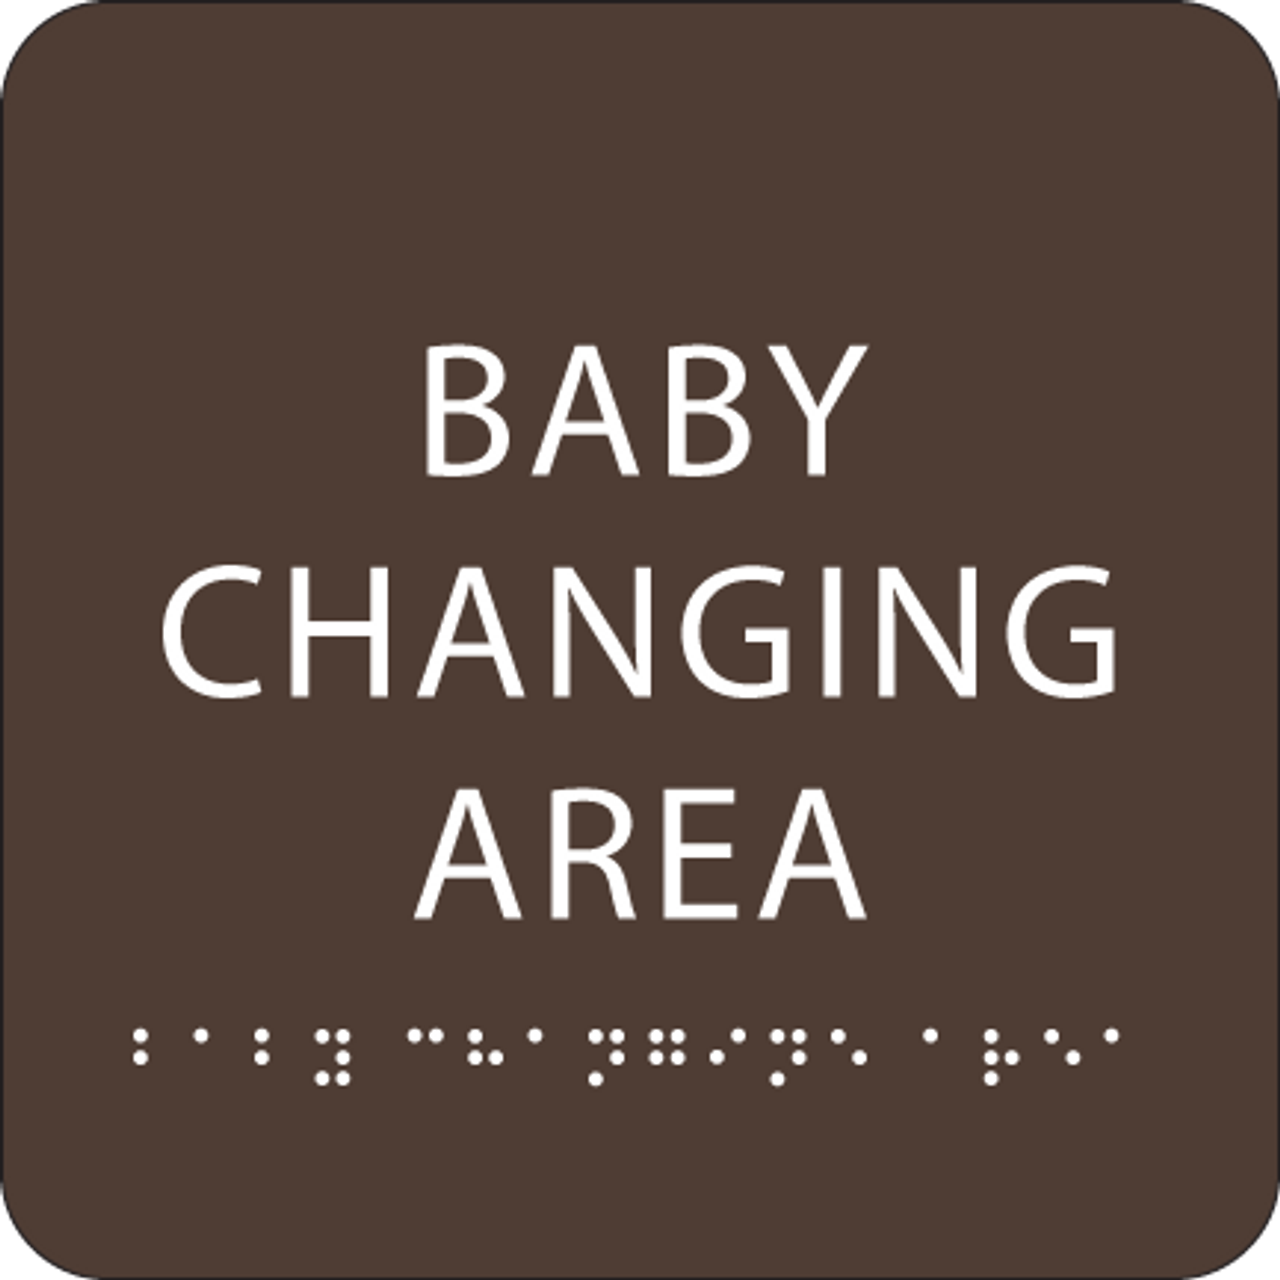 Brown Baby Changing Area ADA Sign